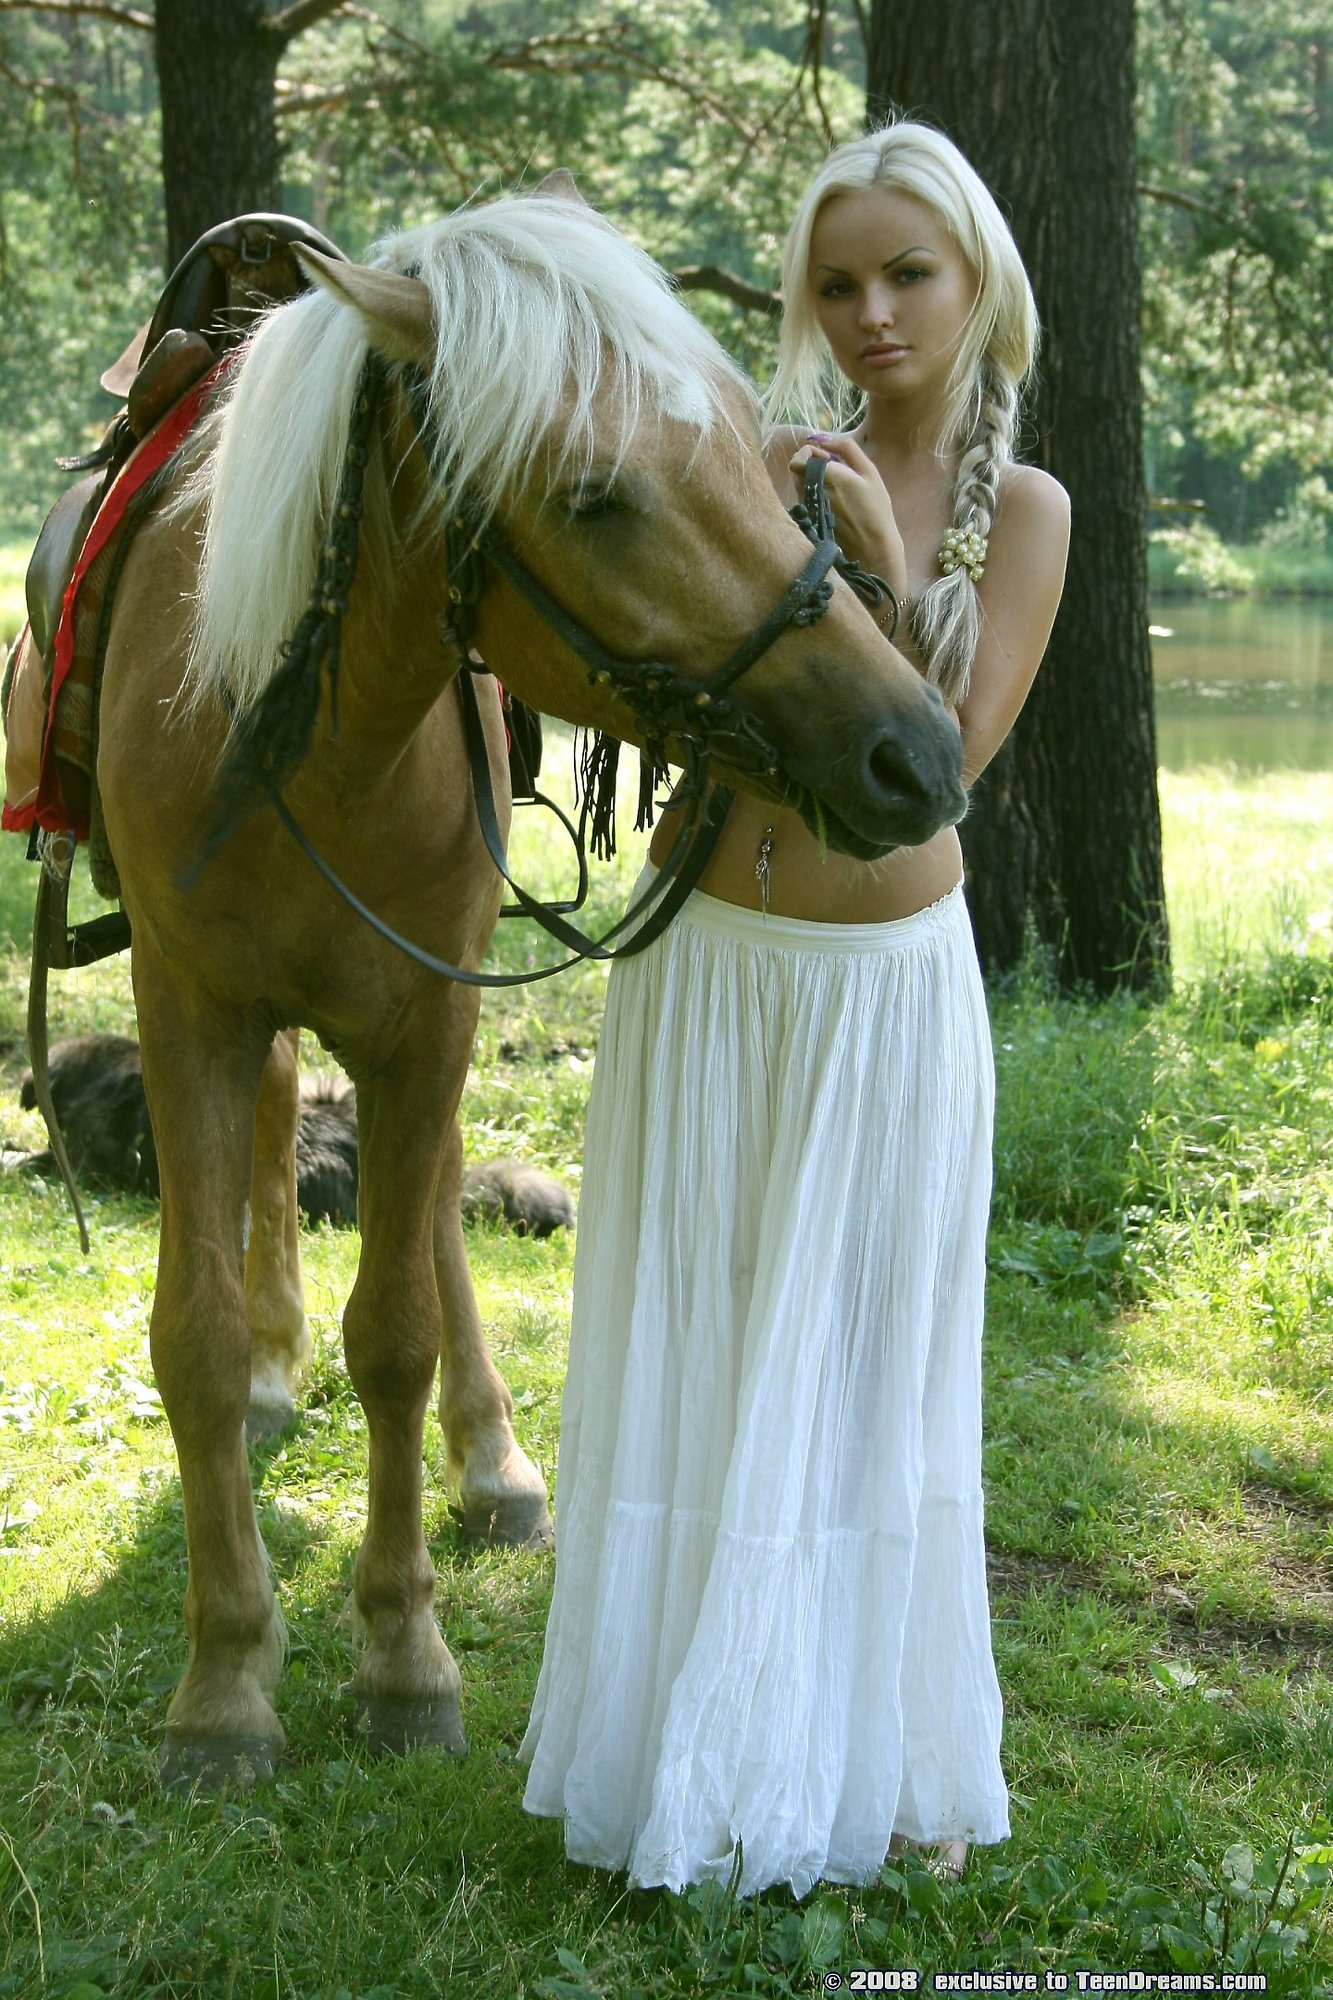 Animal Babe Porn sexy white dressed babe naked horse riding action - young